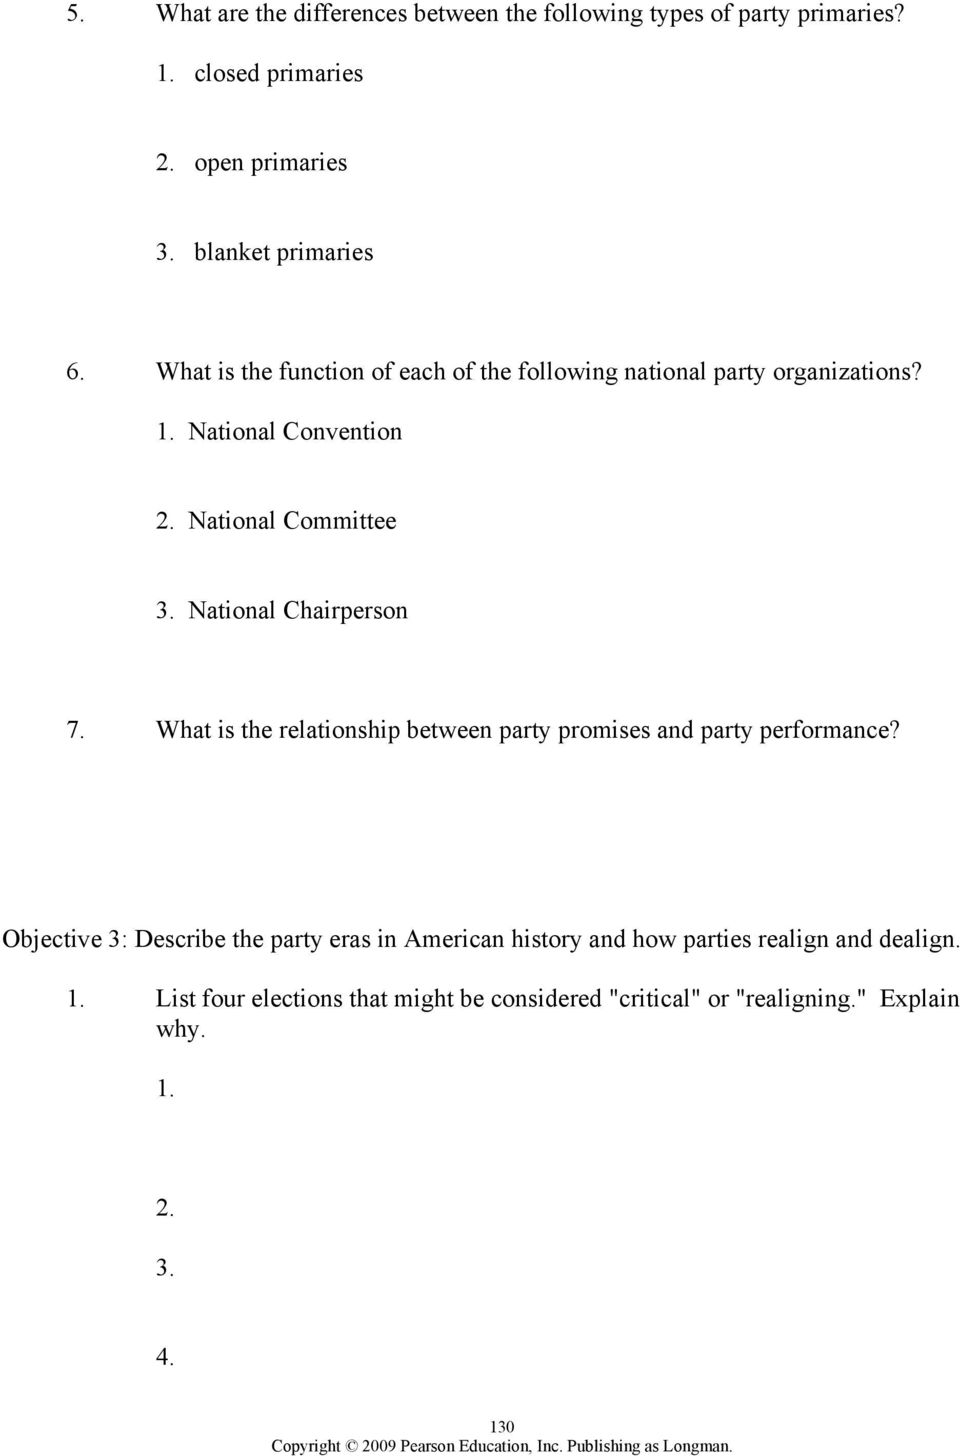 worksheet The Populist Movement The Value Of Third Parties Worksheet Answers chapter 8 political parties outline pdf what is the relationship between party promises and performance